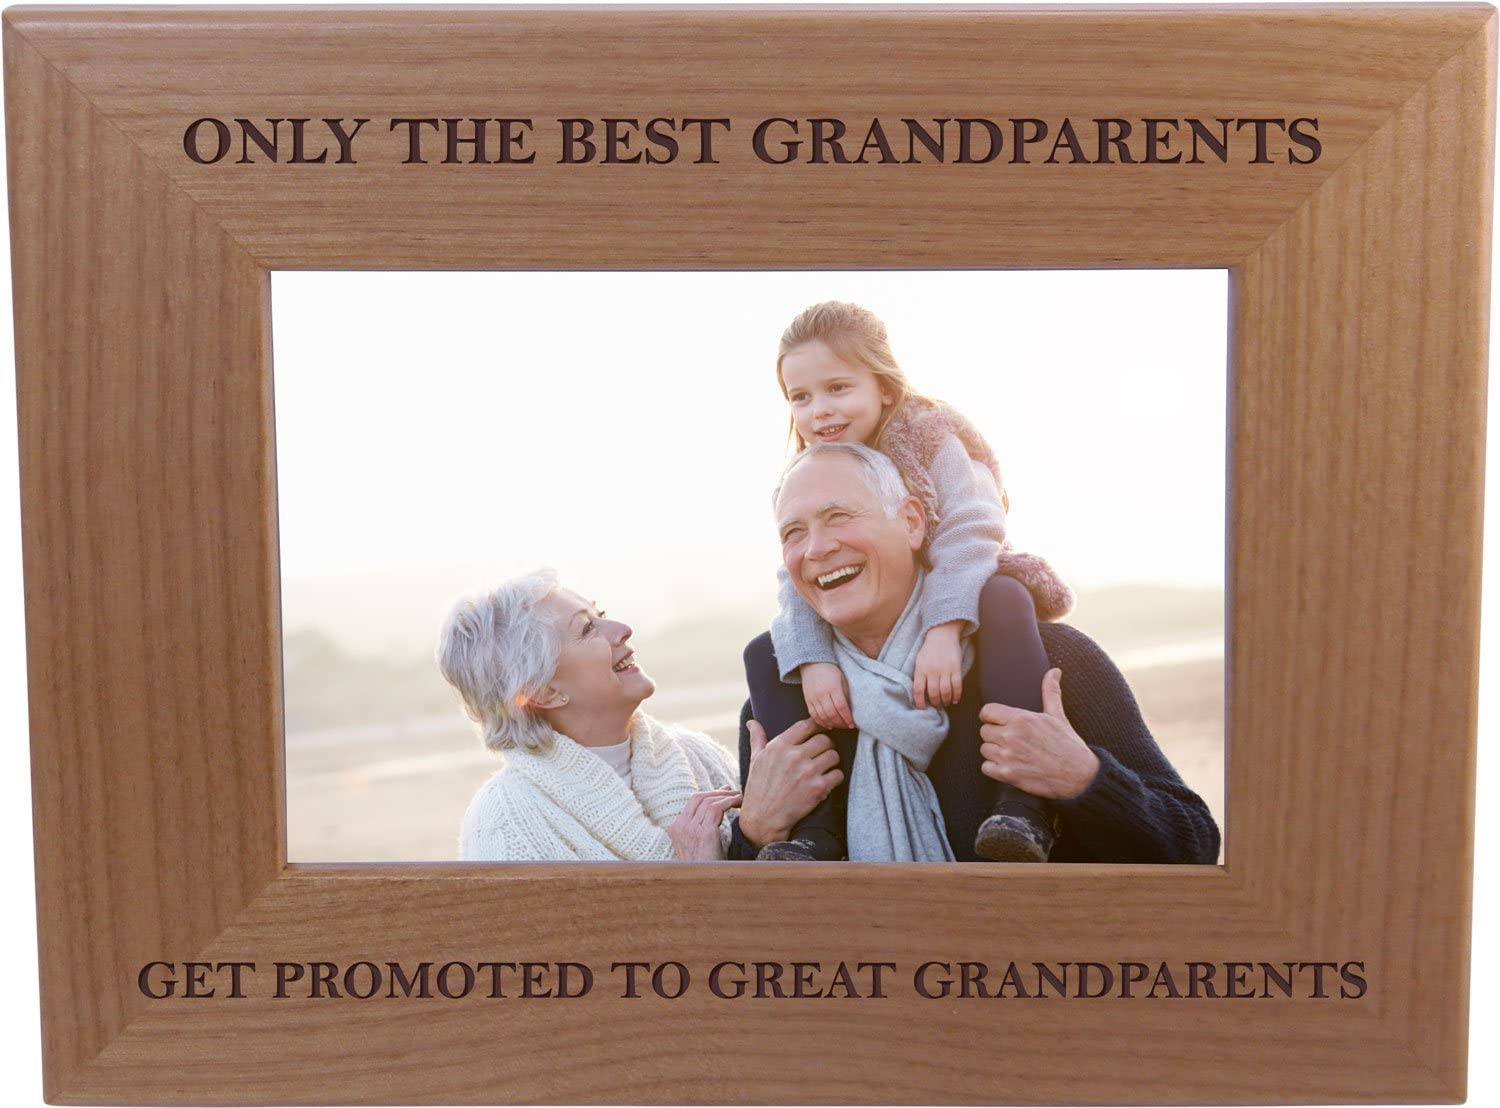 CustomGiftsNow Only The Best Grandparents Get Promoted to Great Grandparents - Wood Picture Frame Holds 4x6 Inch Photo - Great Christmas, Father's Day, for Parents (4x6-inch Horizontal)